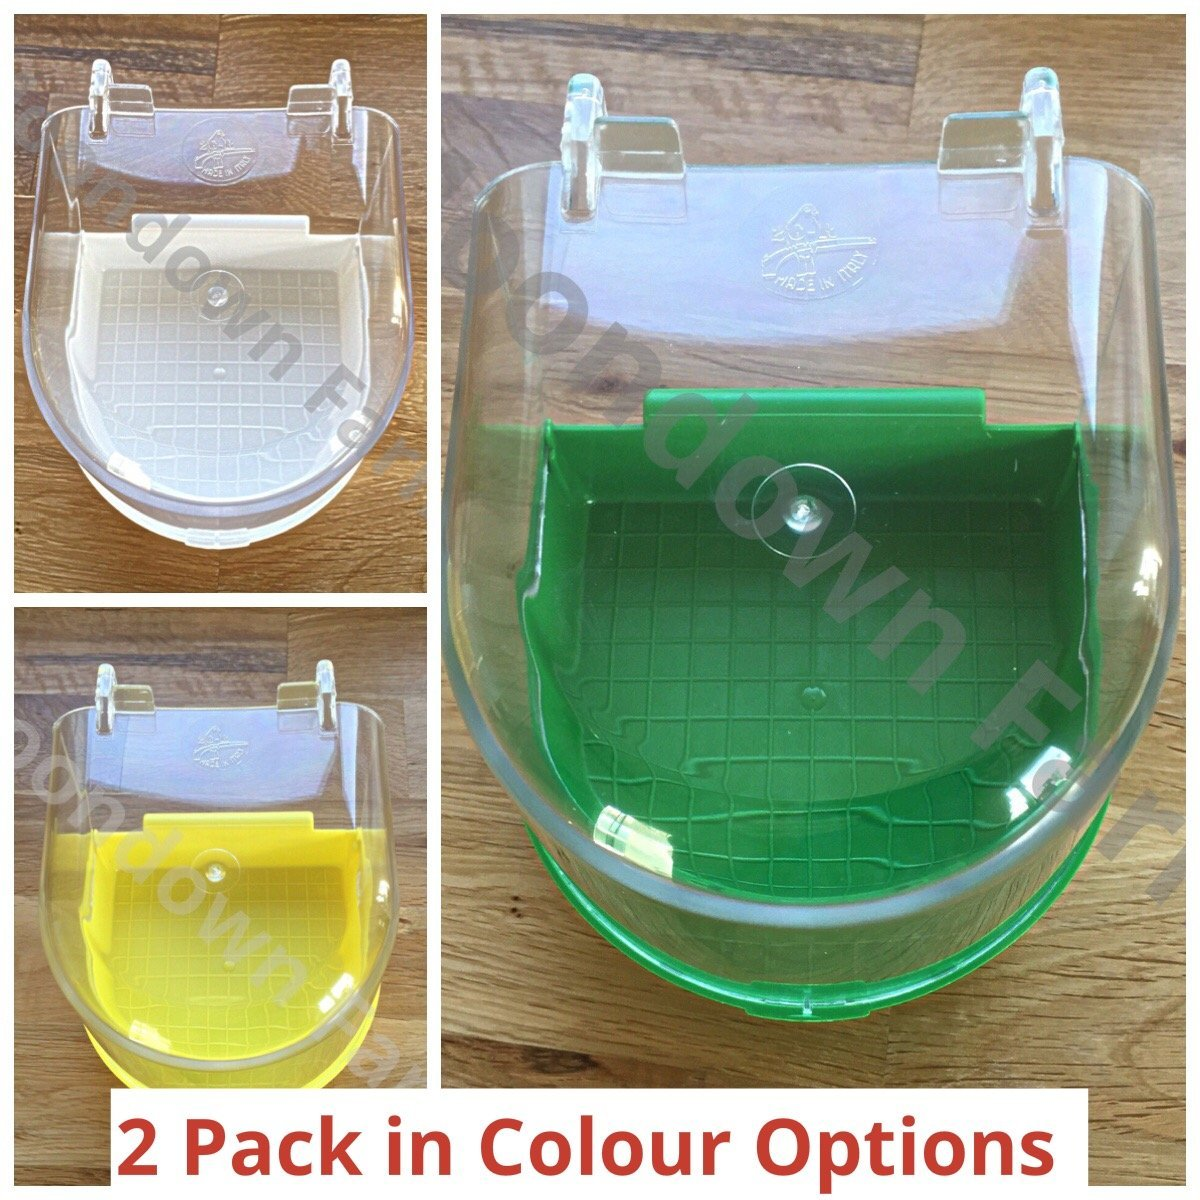 Moondown Farm Bird Bath 2 Pack in Colour Options for Cage/Aviary Finch, Canary (Green)